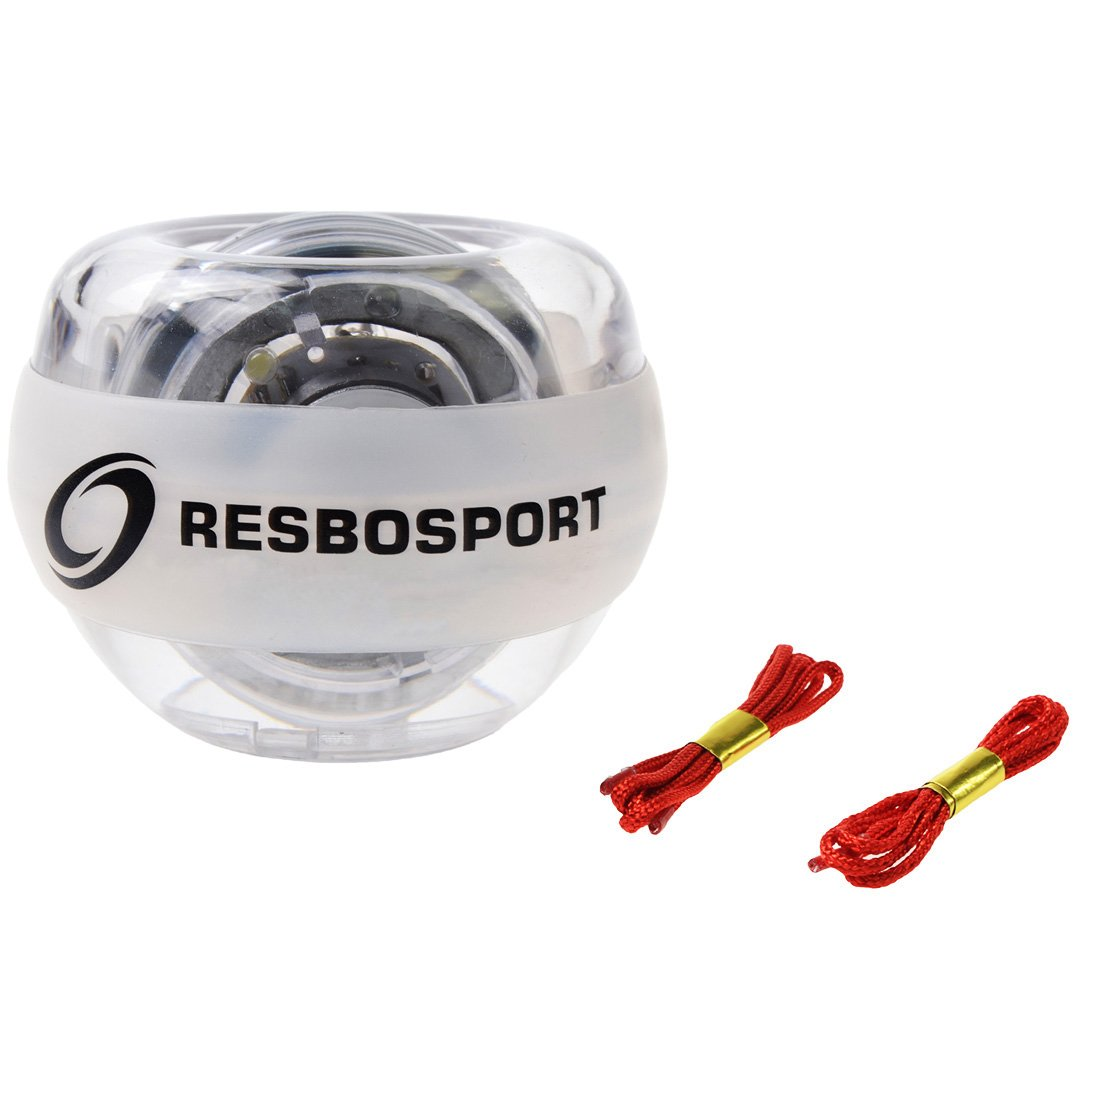 RESBO Wrist Trainer Ball Exerciser Hand Spinner Gyroscopic Ball Metal Type Gyro Ball with LED Light by RESBO SPORT (Image #8)